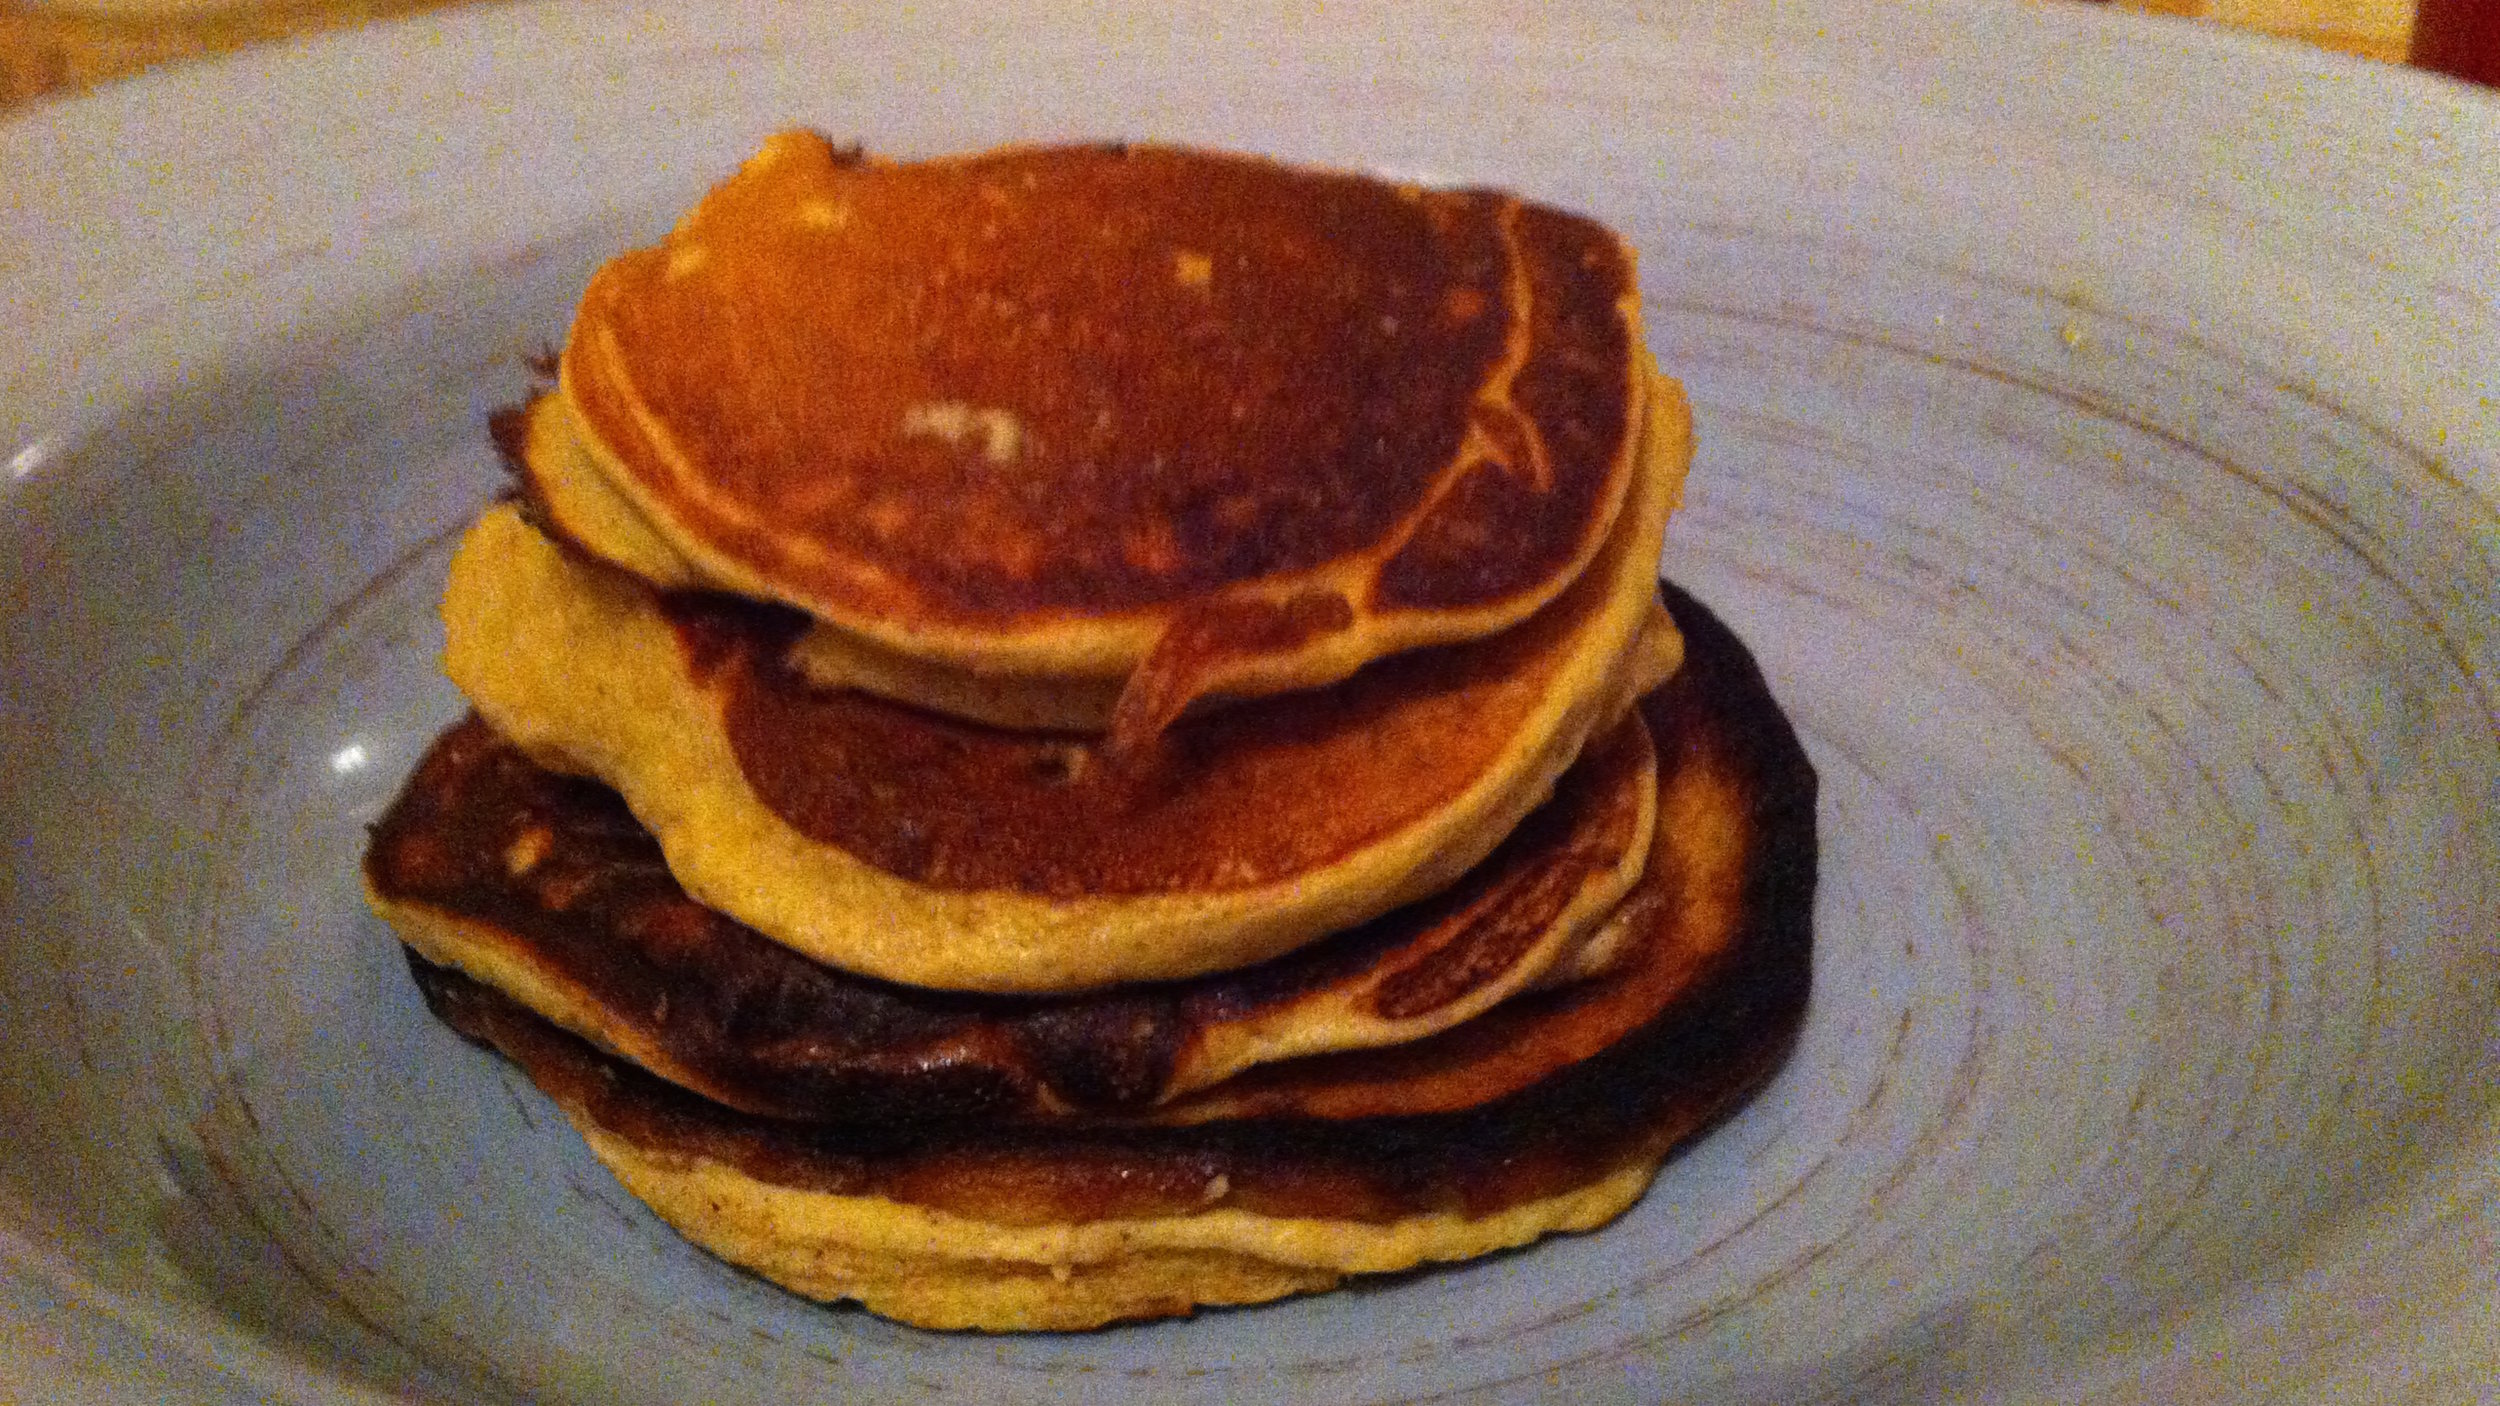 SImply putting plaintain, egg, and cinnamon in a blender makes these light, fluffy pancakes!